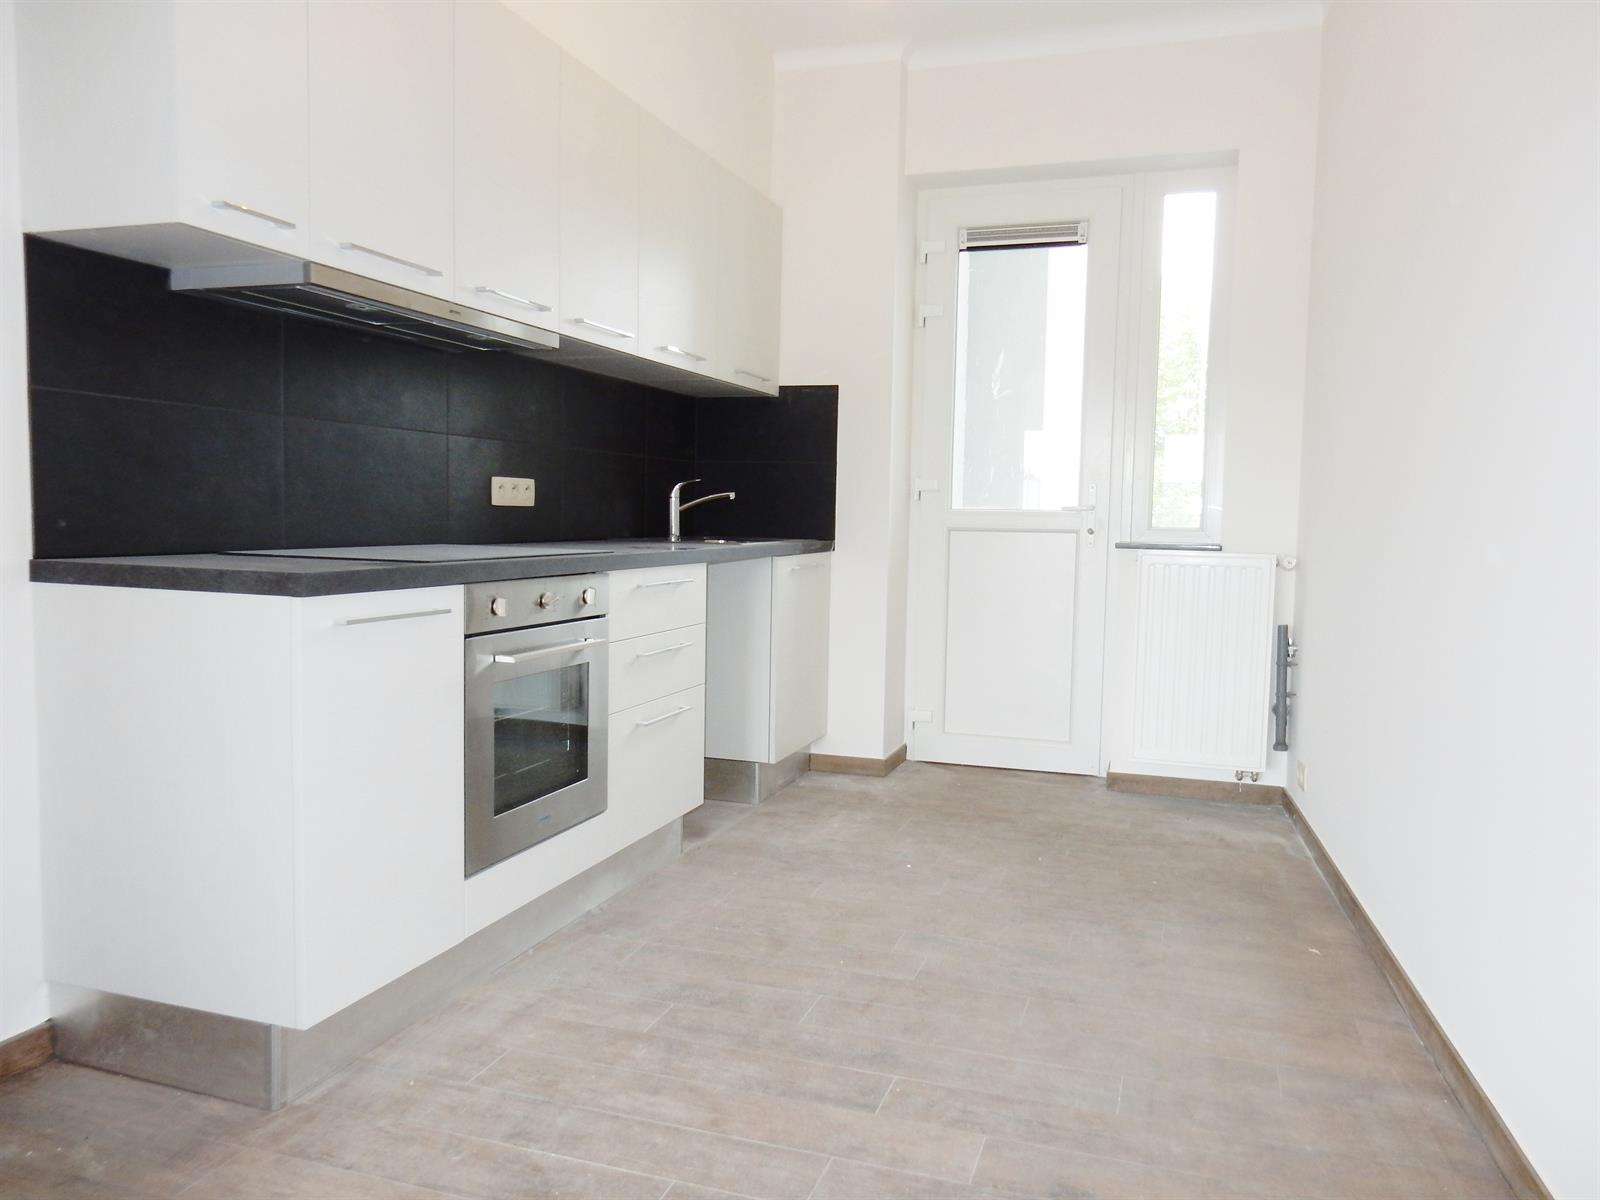 Appartement - Forest - #3956499-2